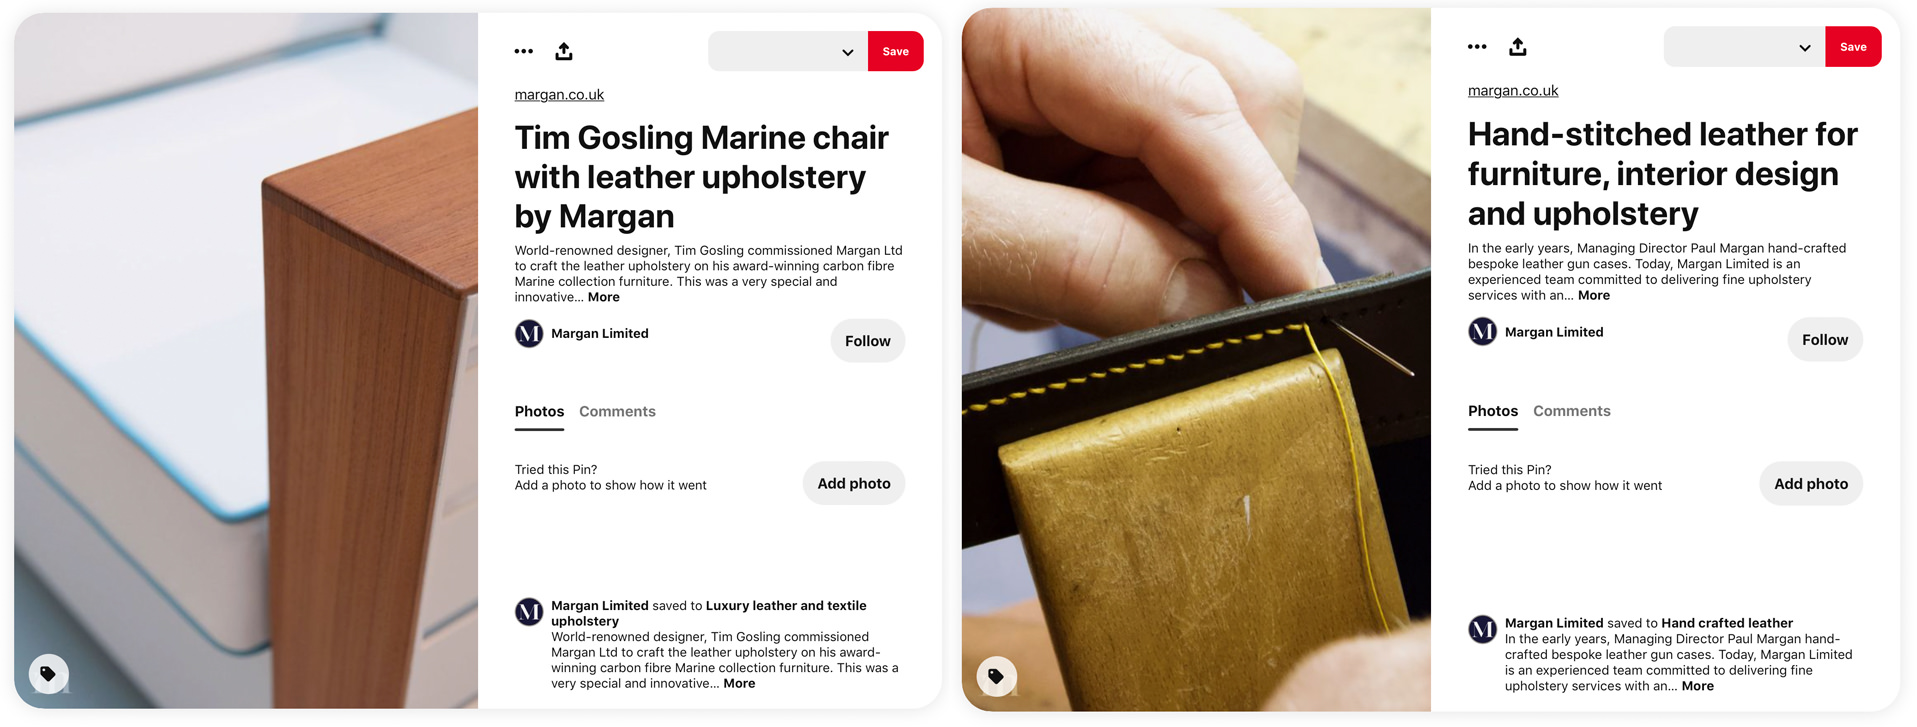 Social media management and design for Margan Limited